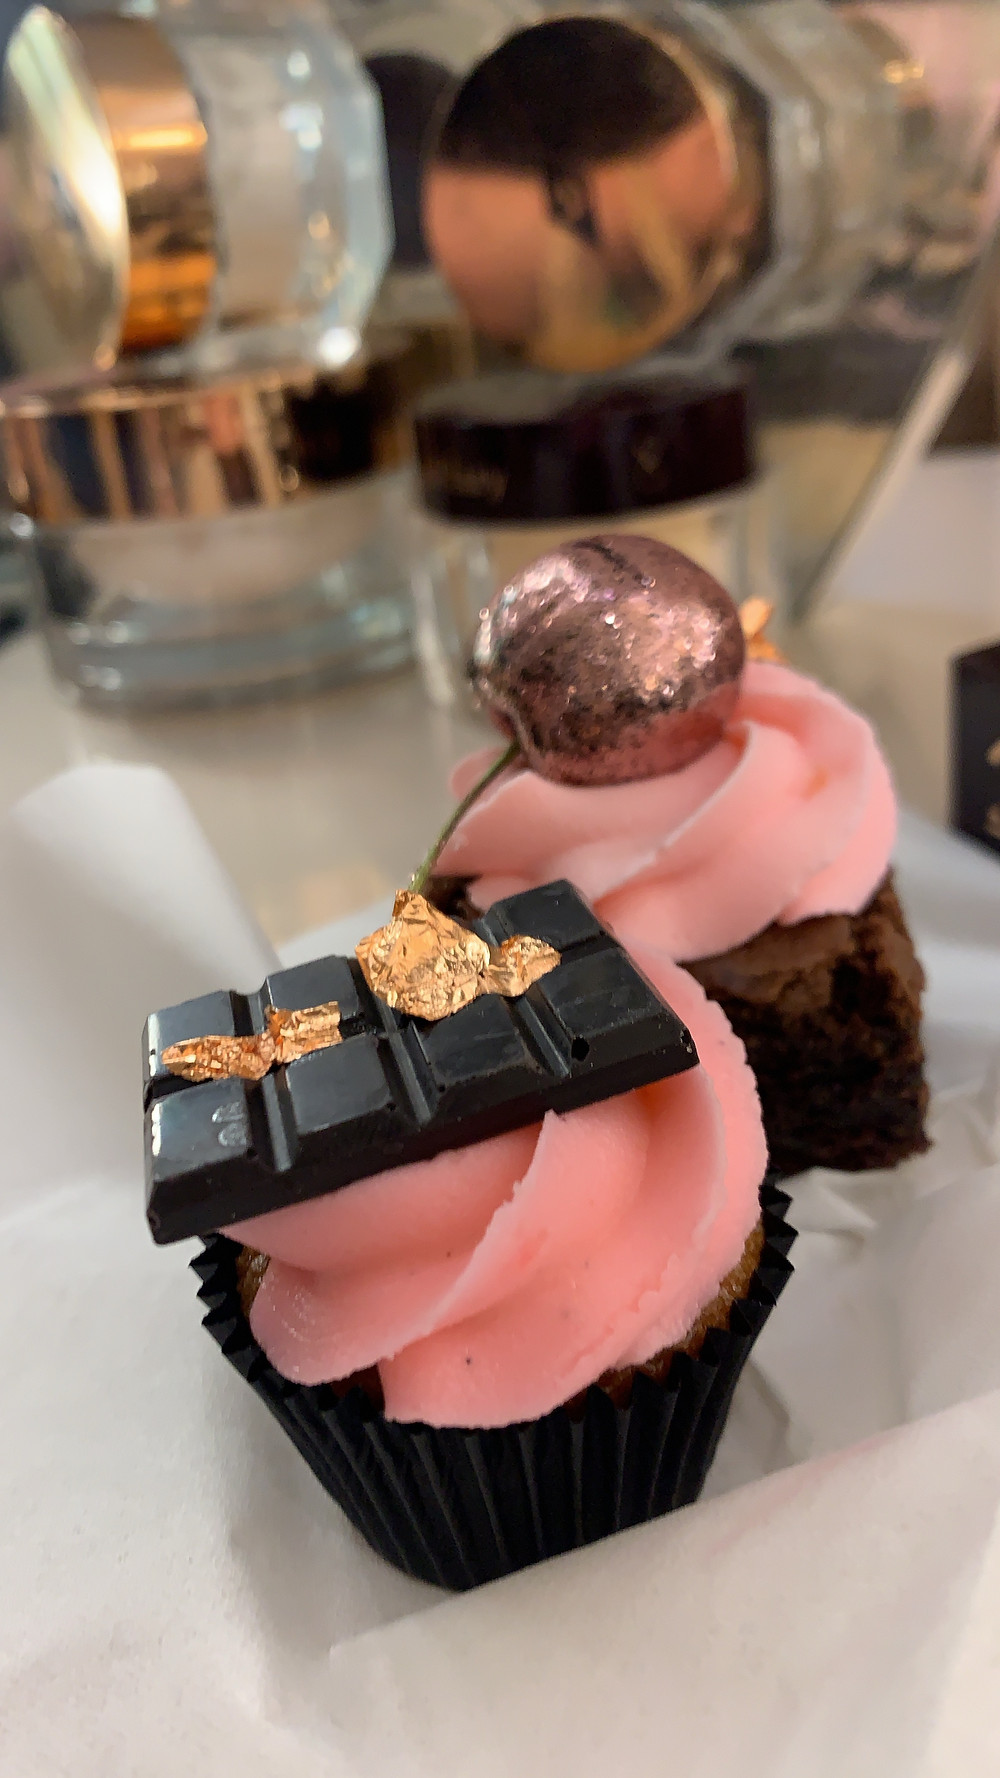 cupcake and brownies at the Charlotte Tilbury Carnaby street London event